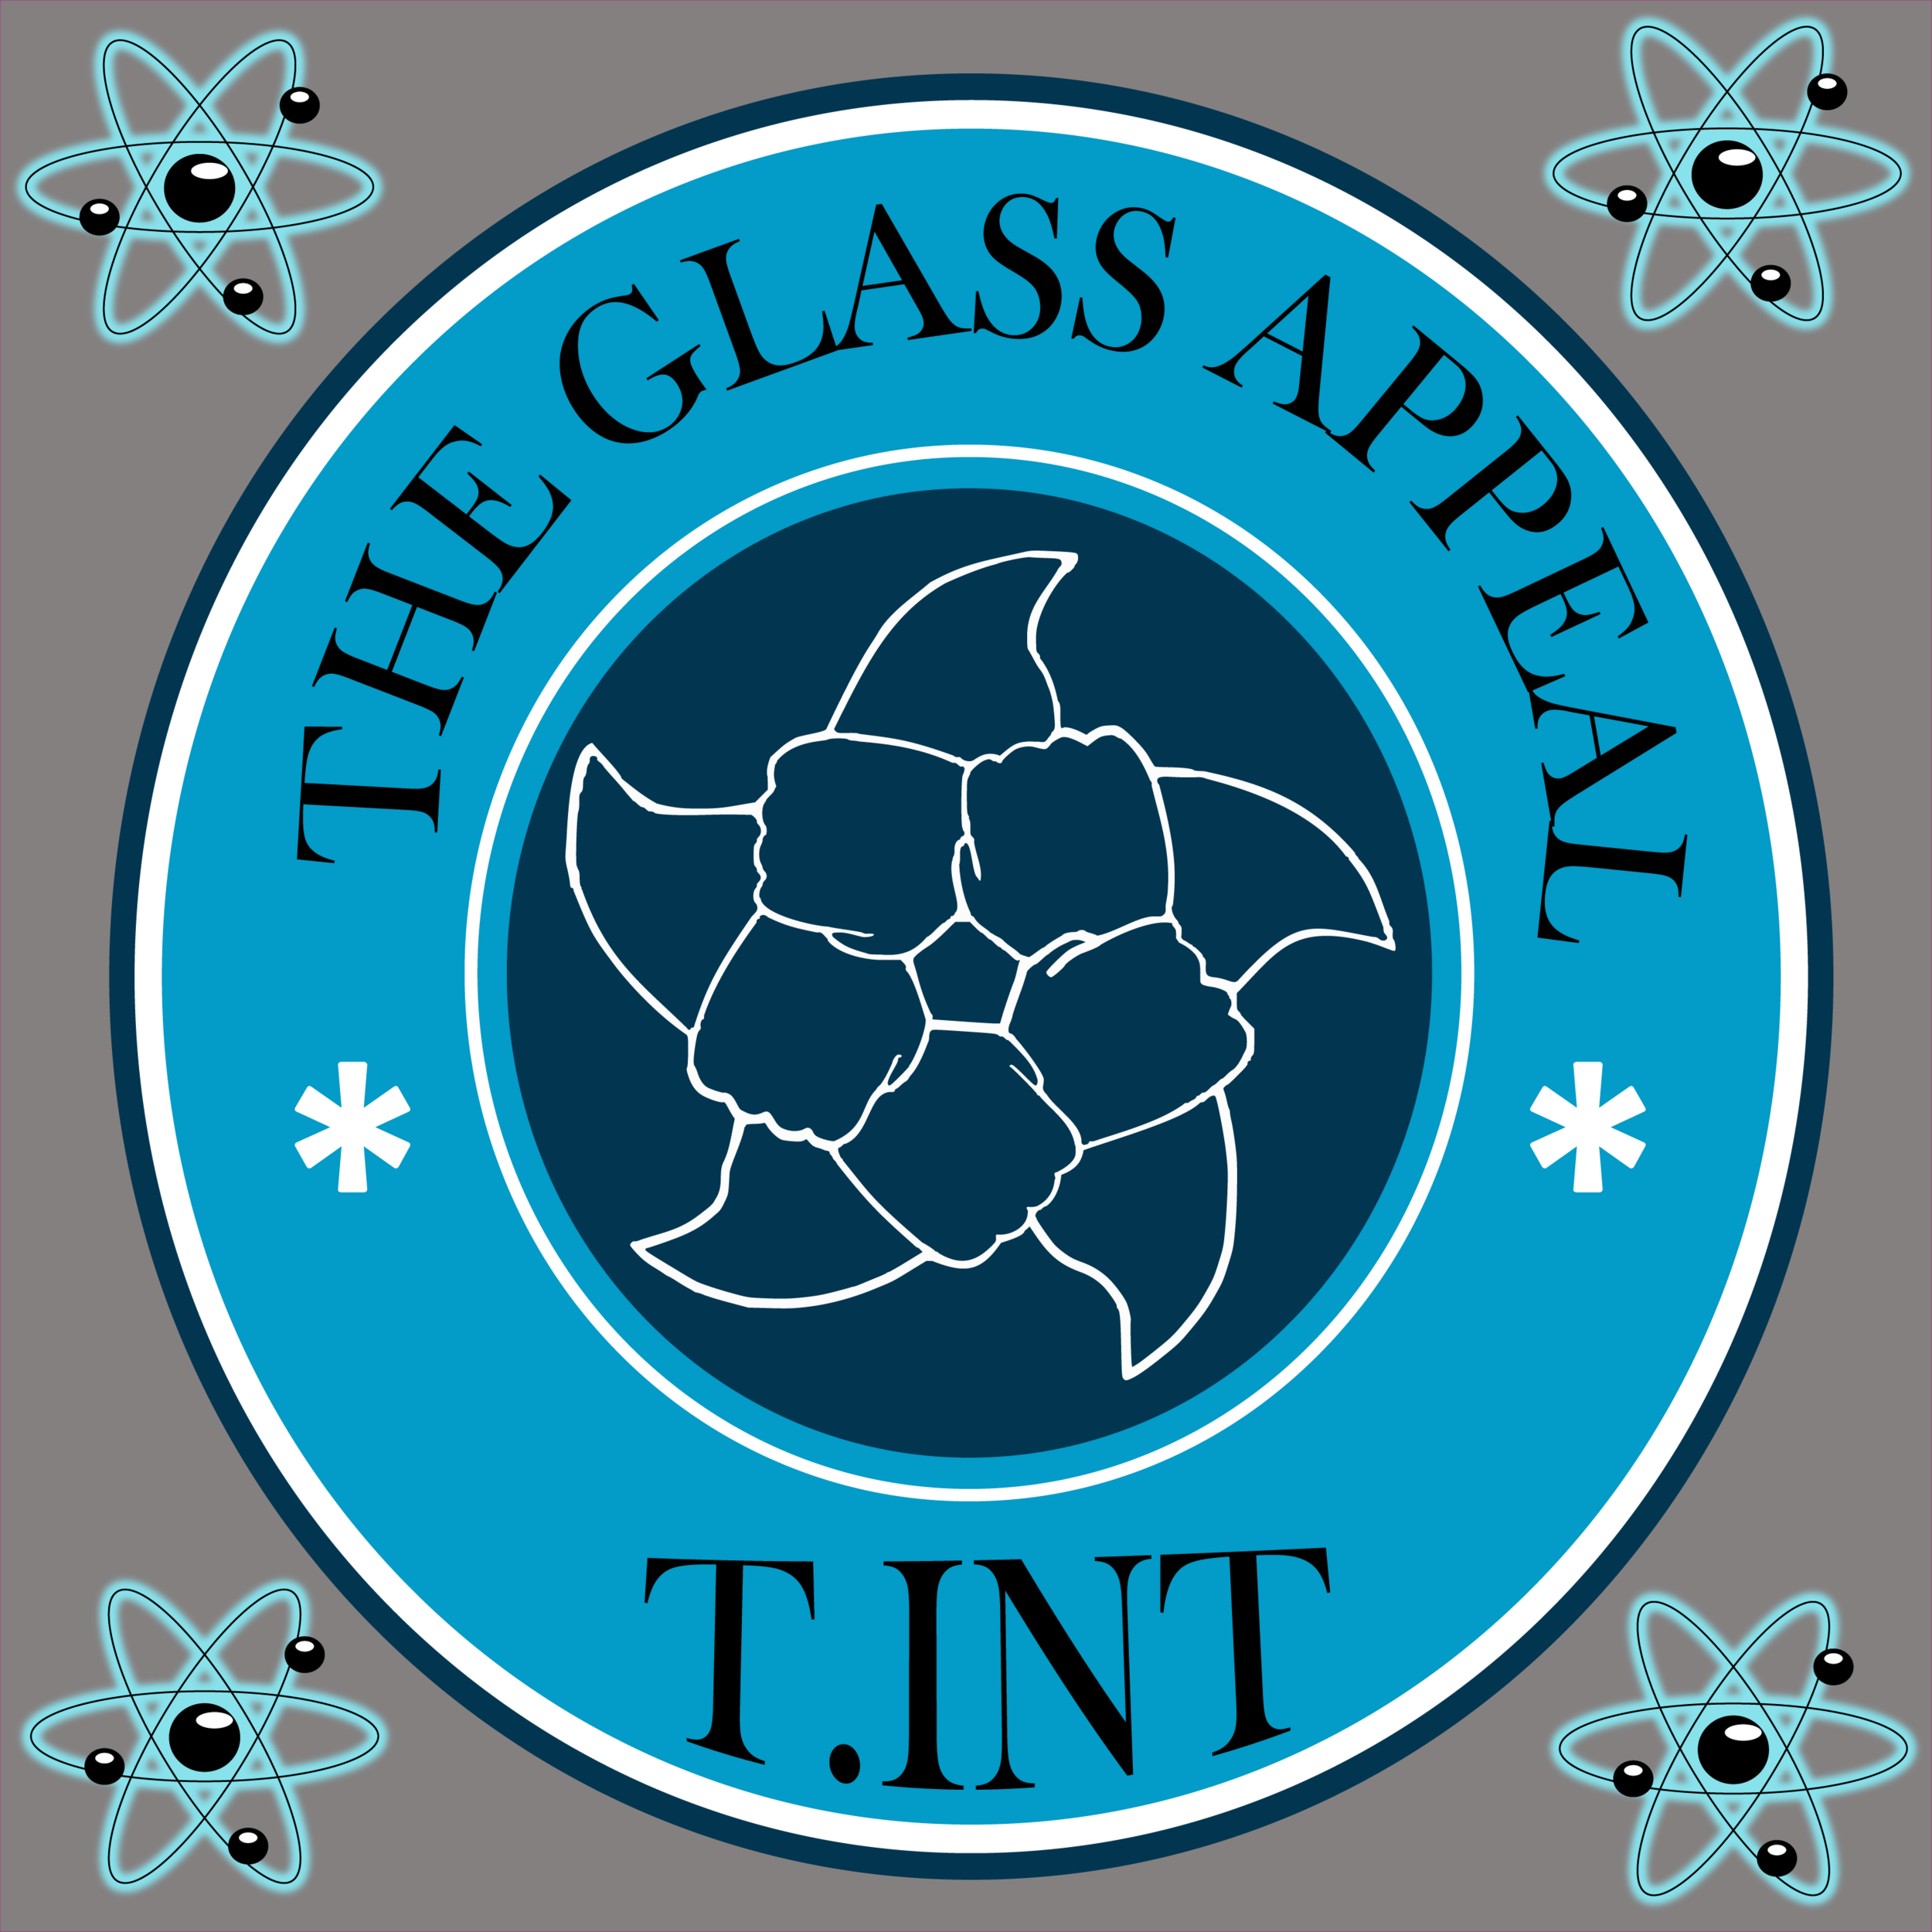 the-glass-appeal-5-01.png